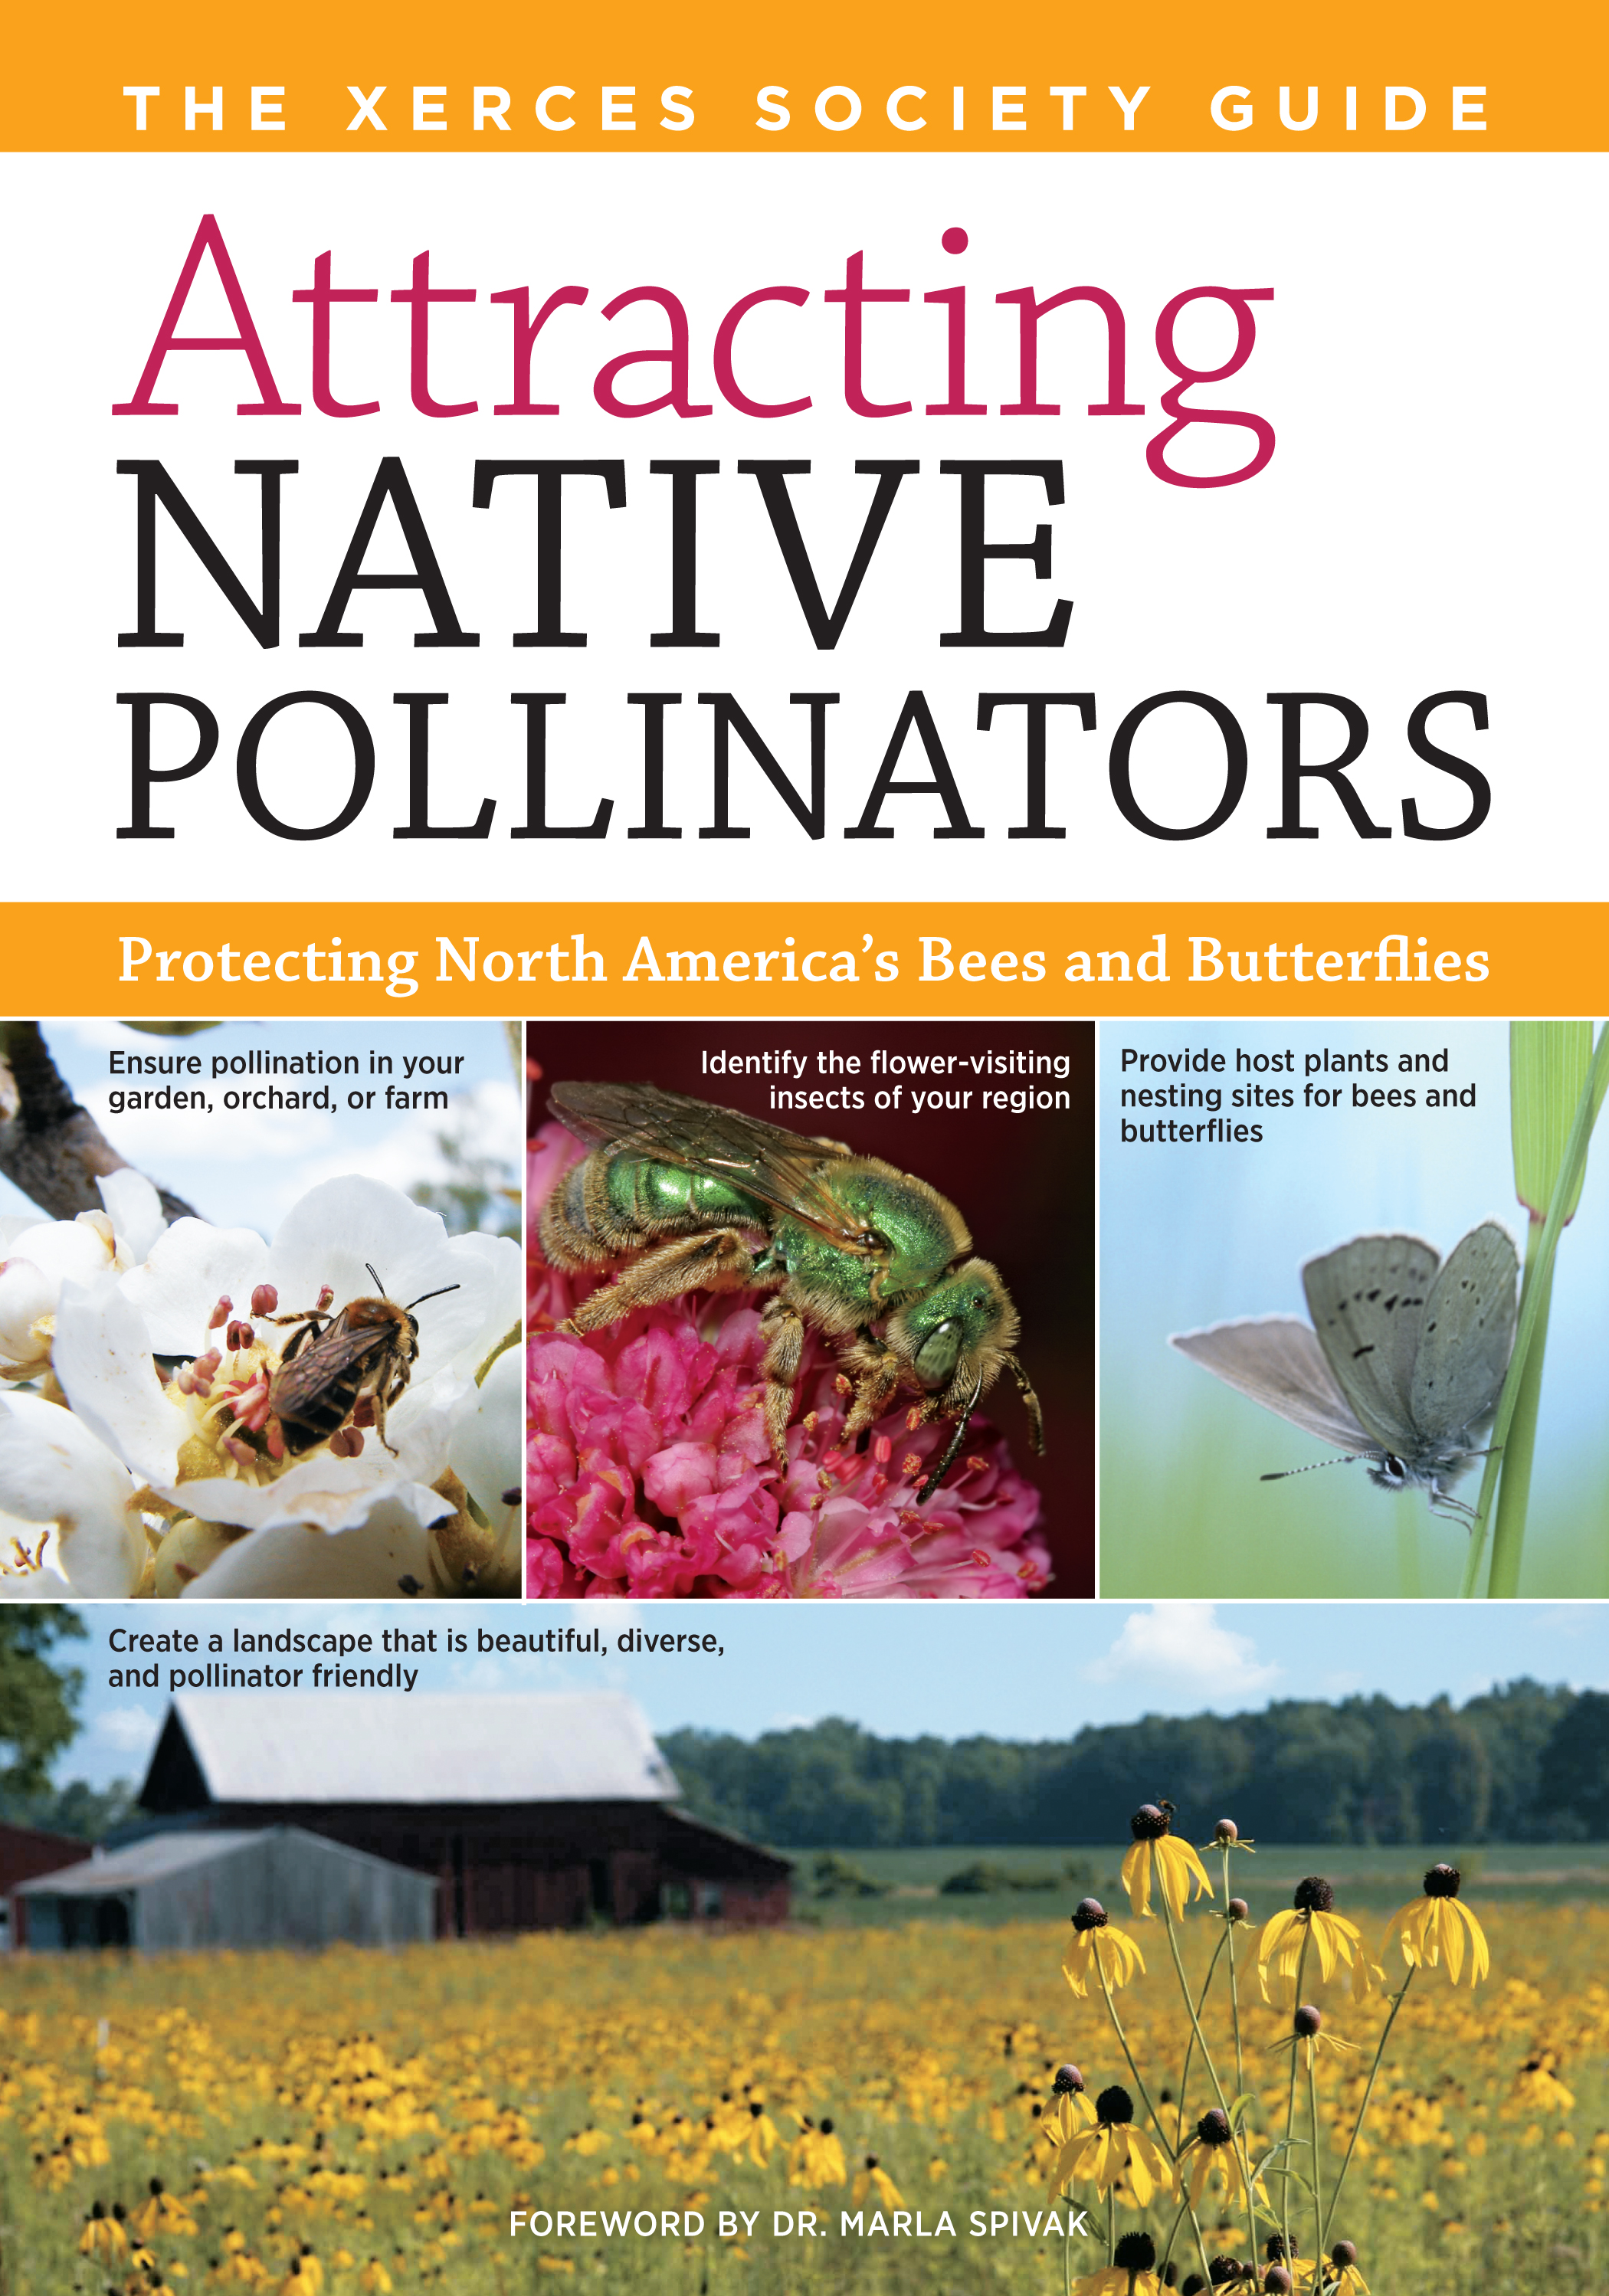 Attracting Native Pollinators The Xerces Society Guide to Conserving North American Bees and Butterflies and Their Habitat - The Xerces Society